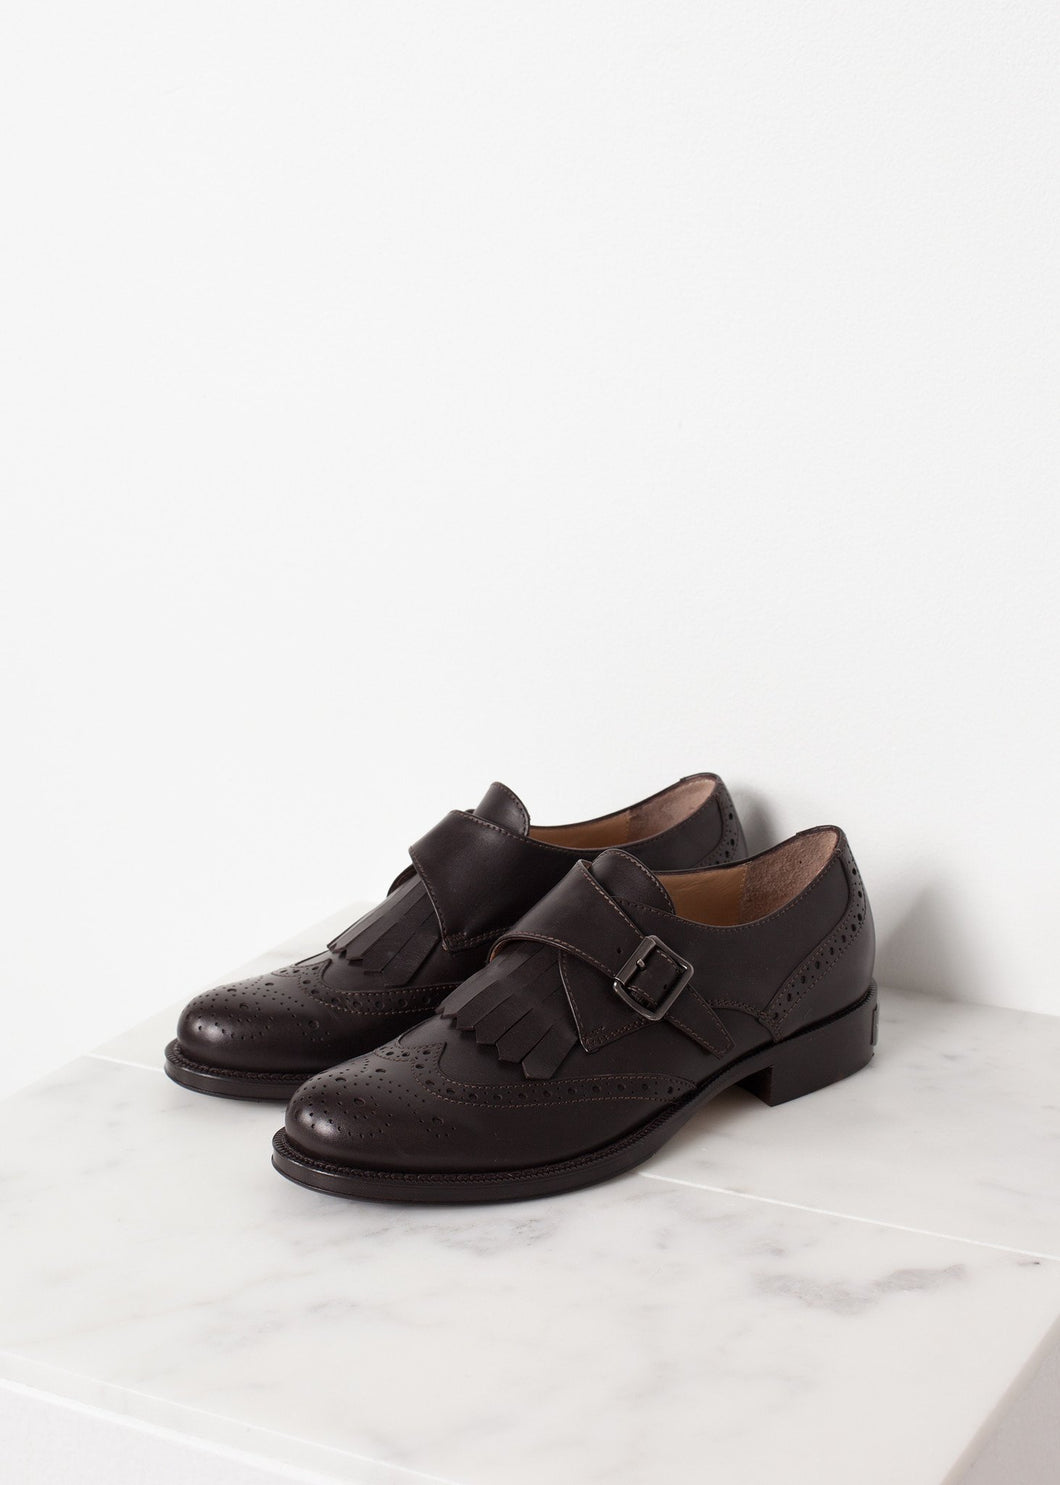 Golf Shoes in Brown